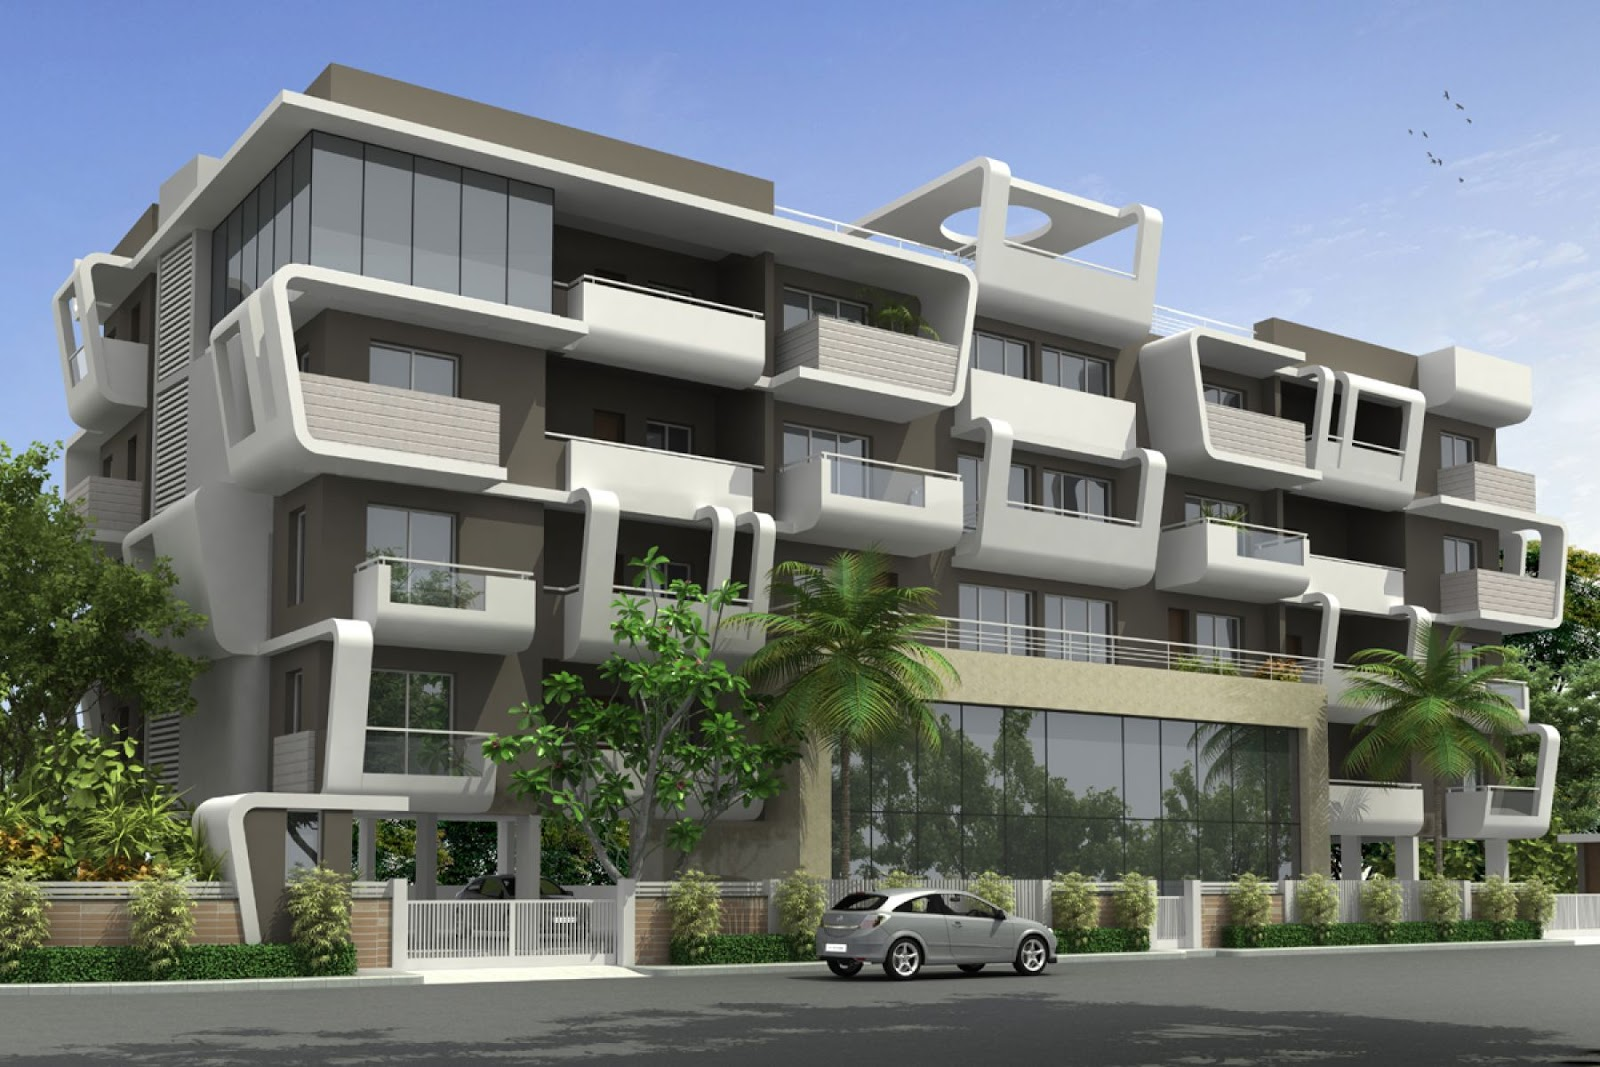 3d apartments 3d architecture visualizations 3d building design